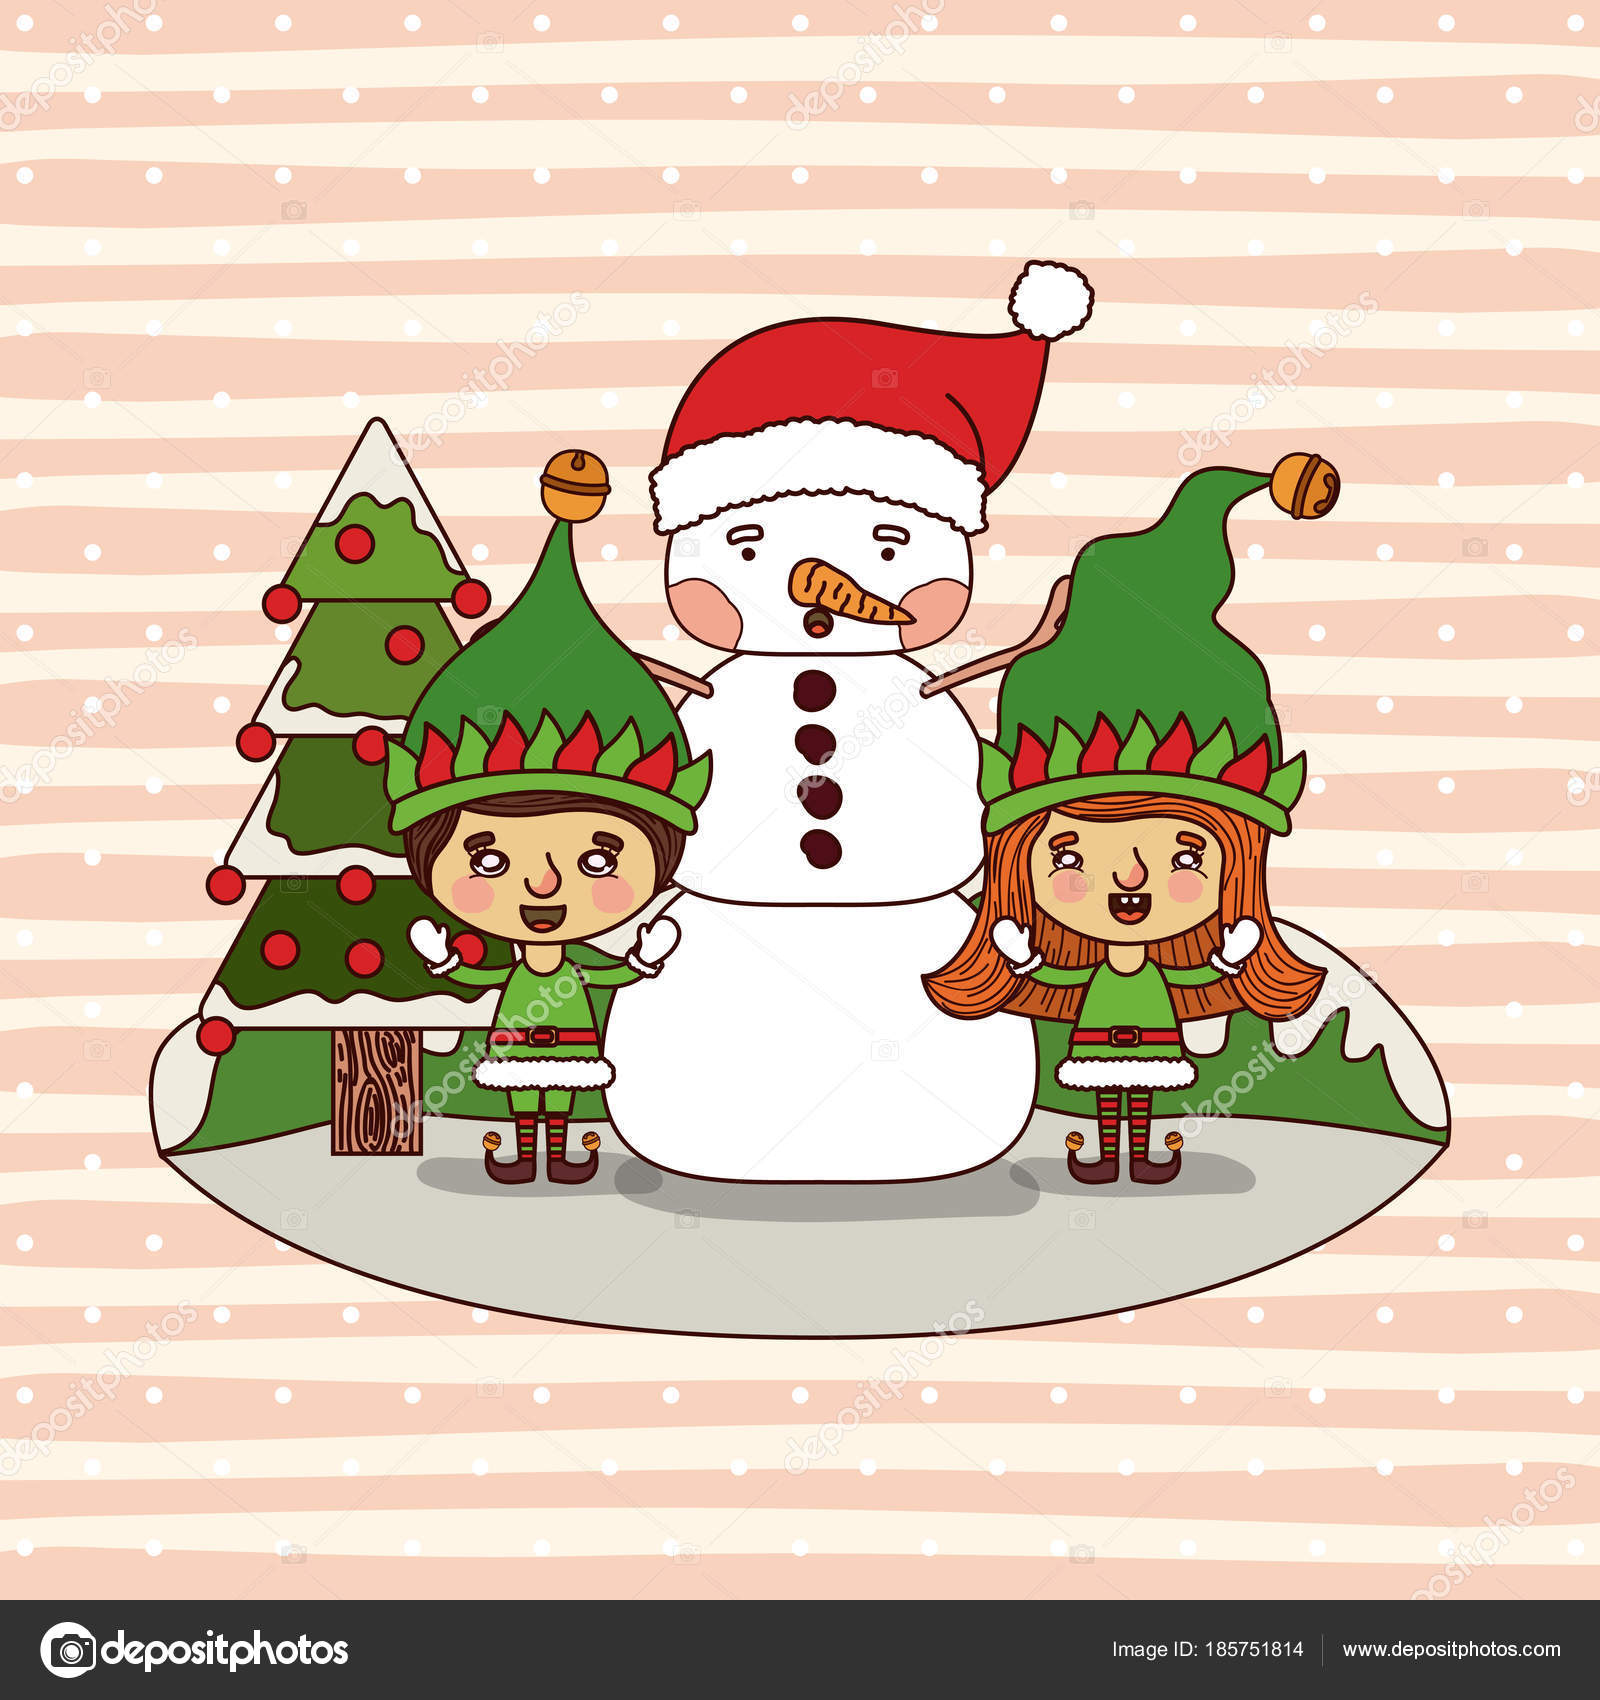 Colorful Christmas Background For Kids.Christmas Card With Christmas Tree And Gnome Kids And